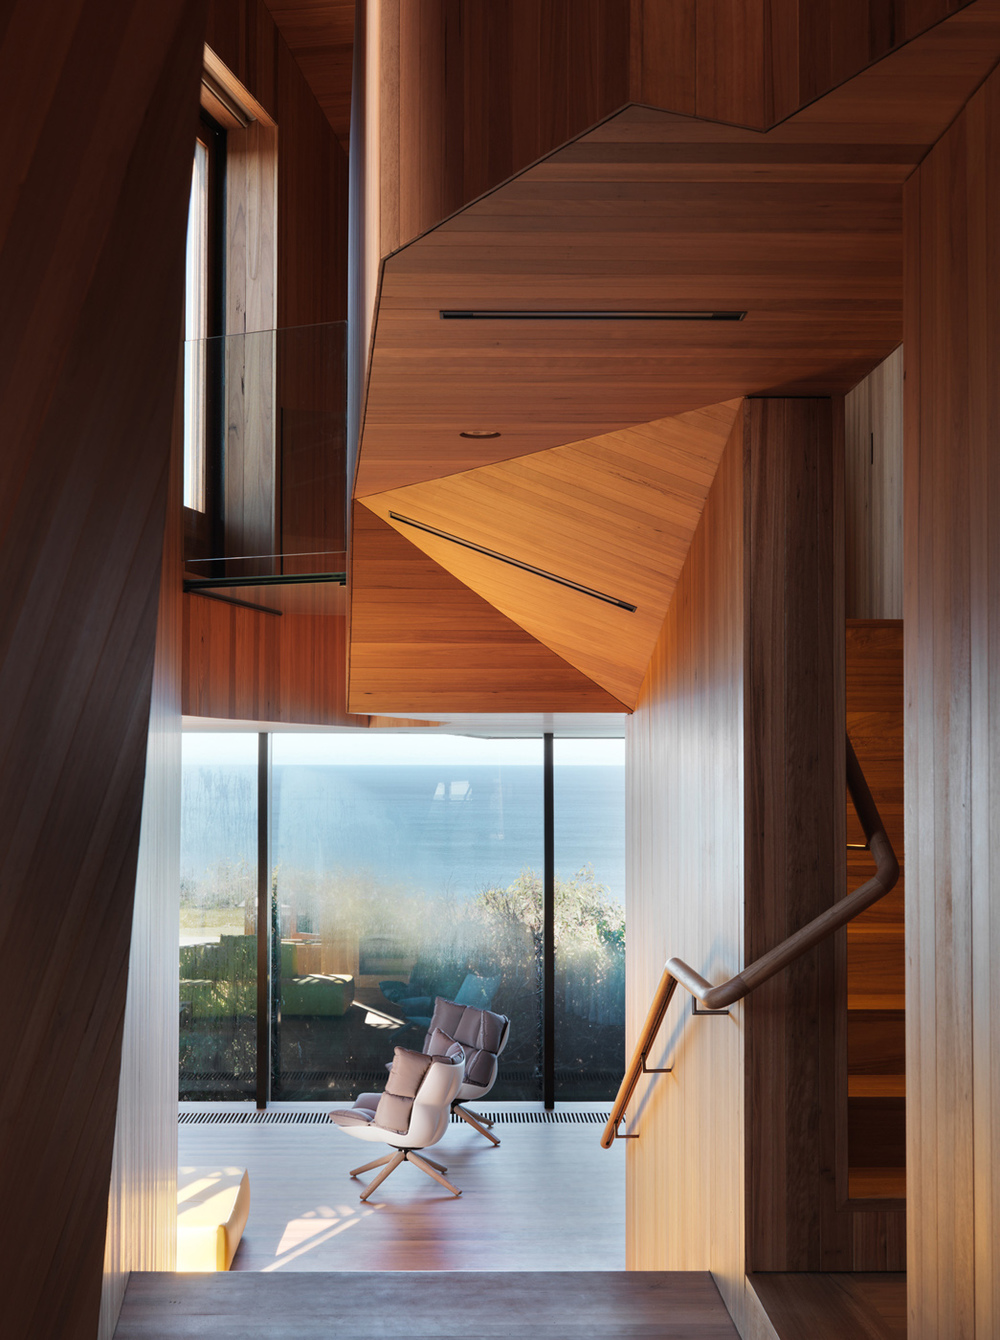 Architecture: Fairhaven Beach House by John Wardle Architects